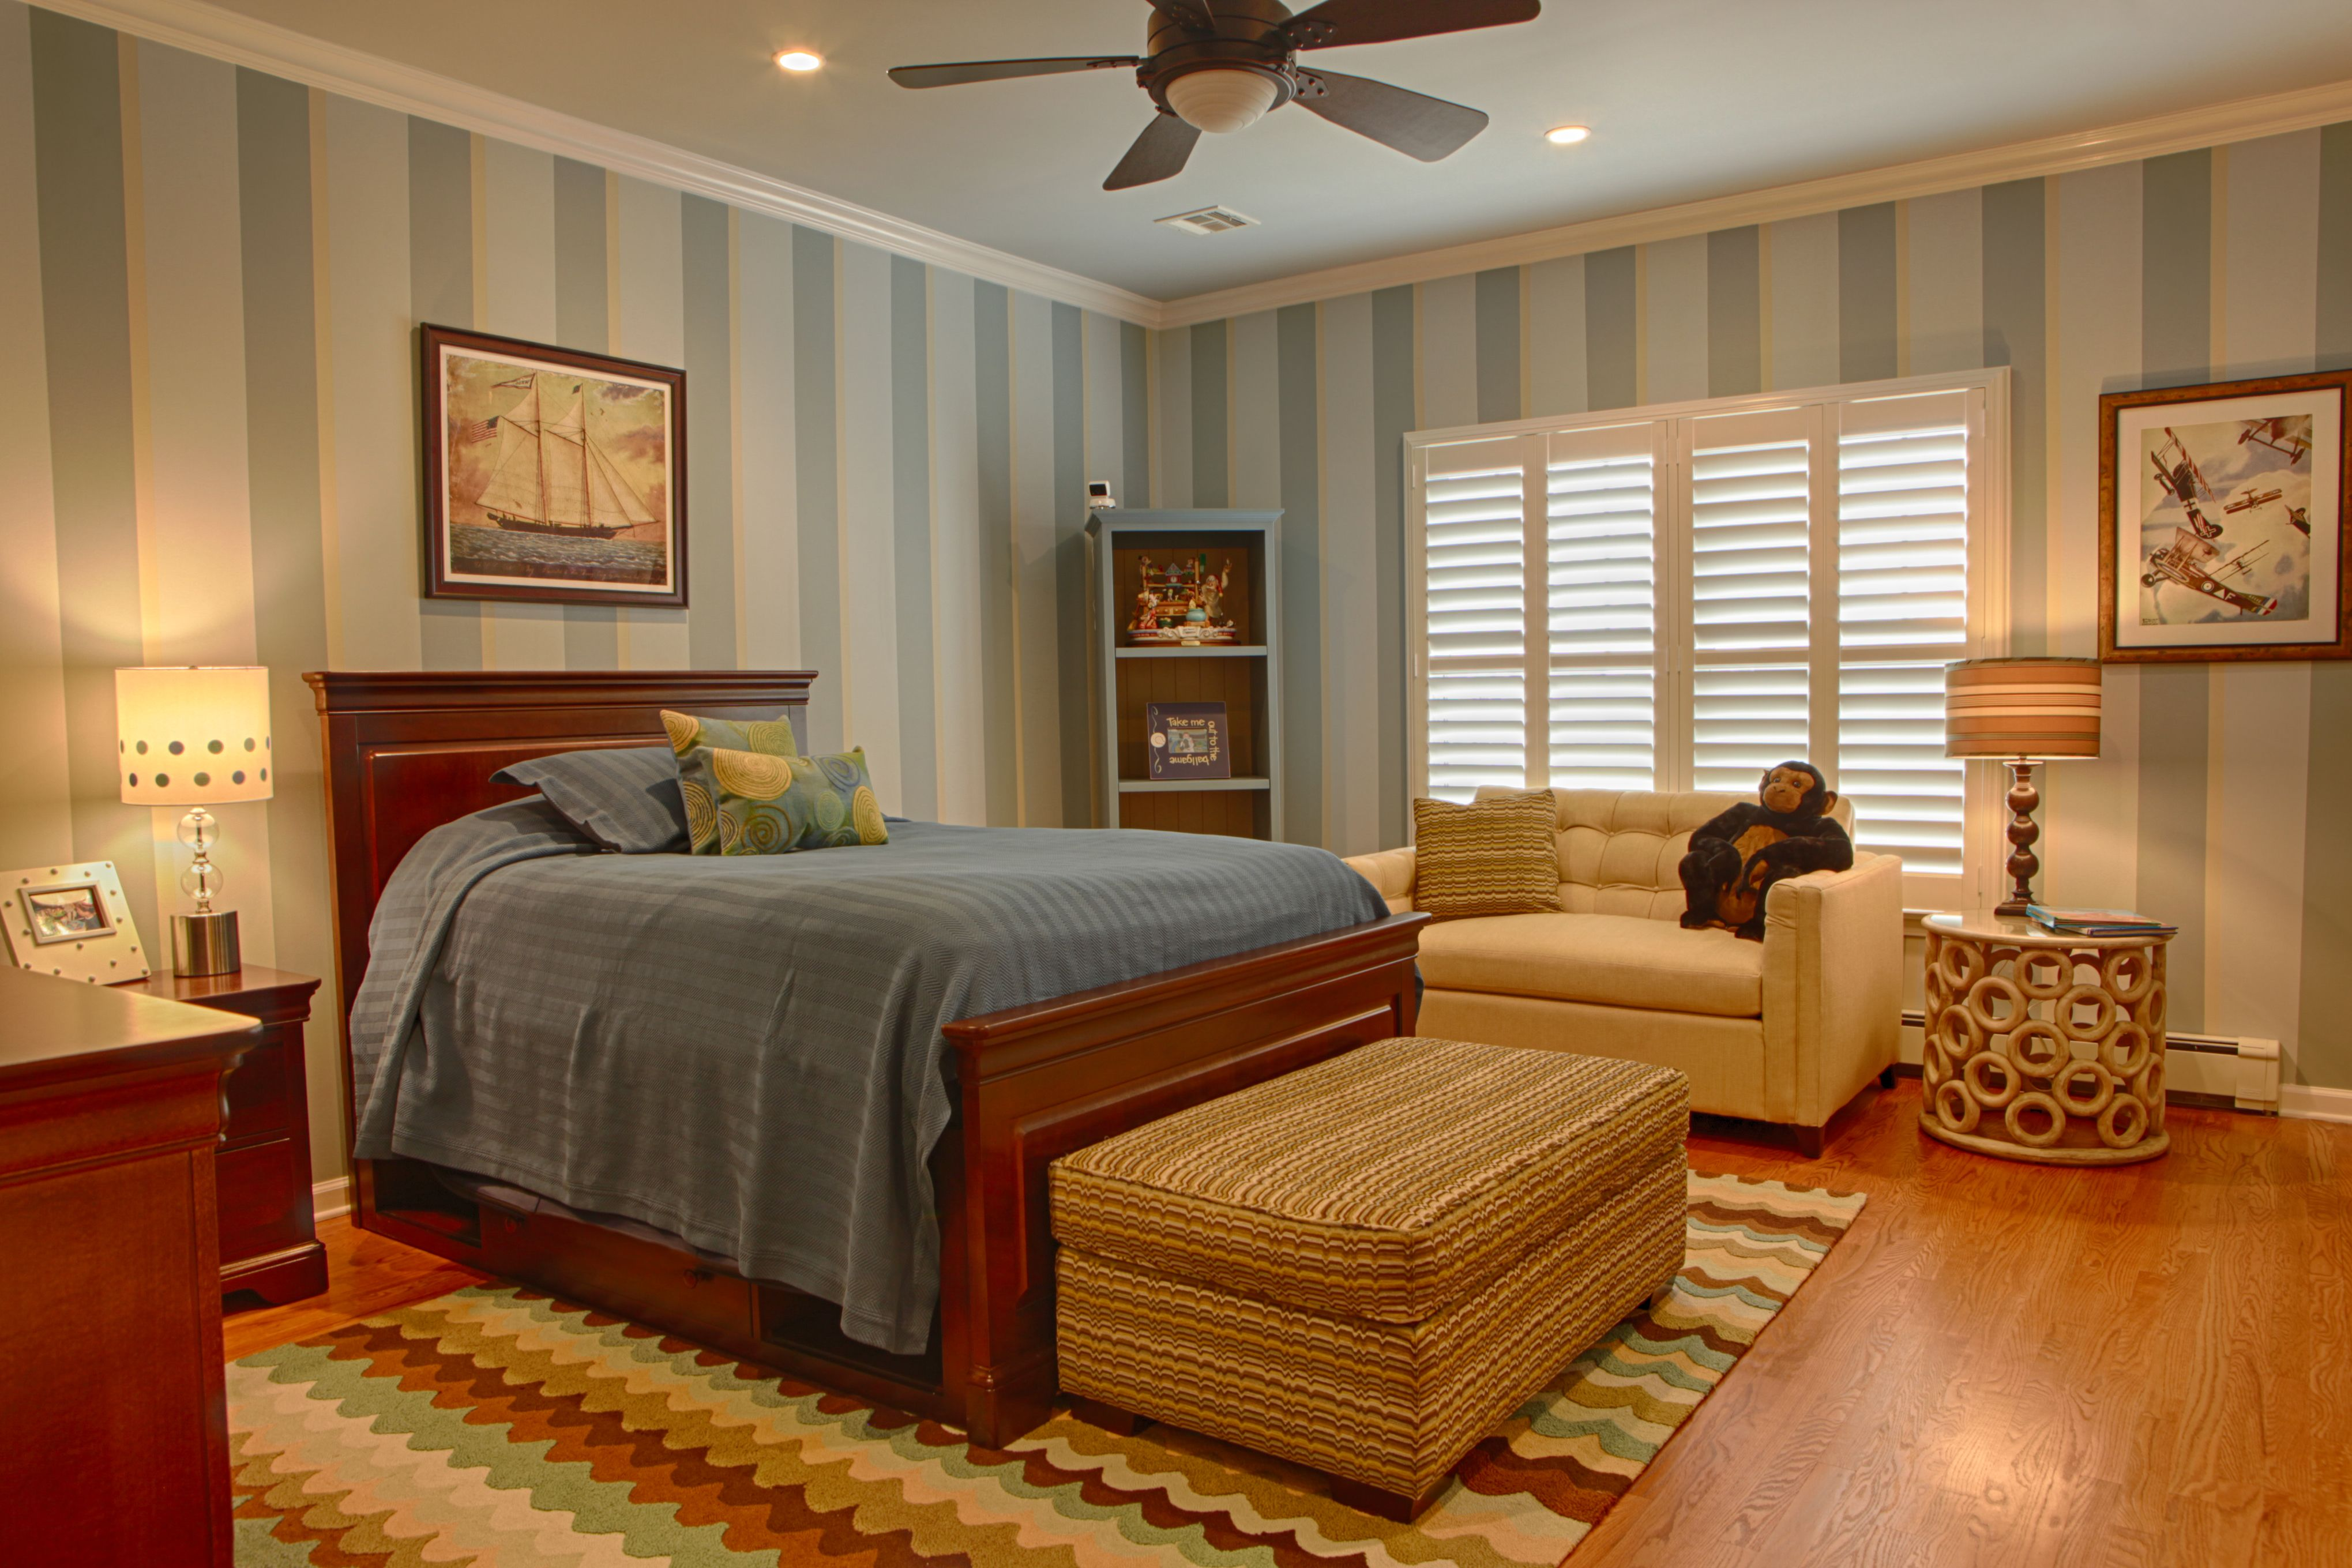 Cool Design Ideas Kids Bedroom With Ceiling Lighting And A